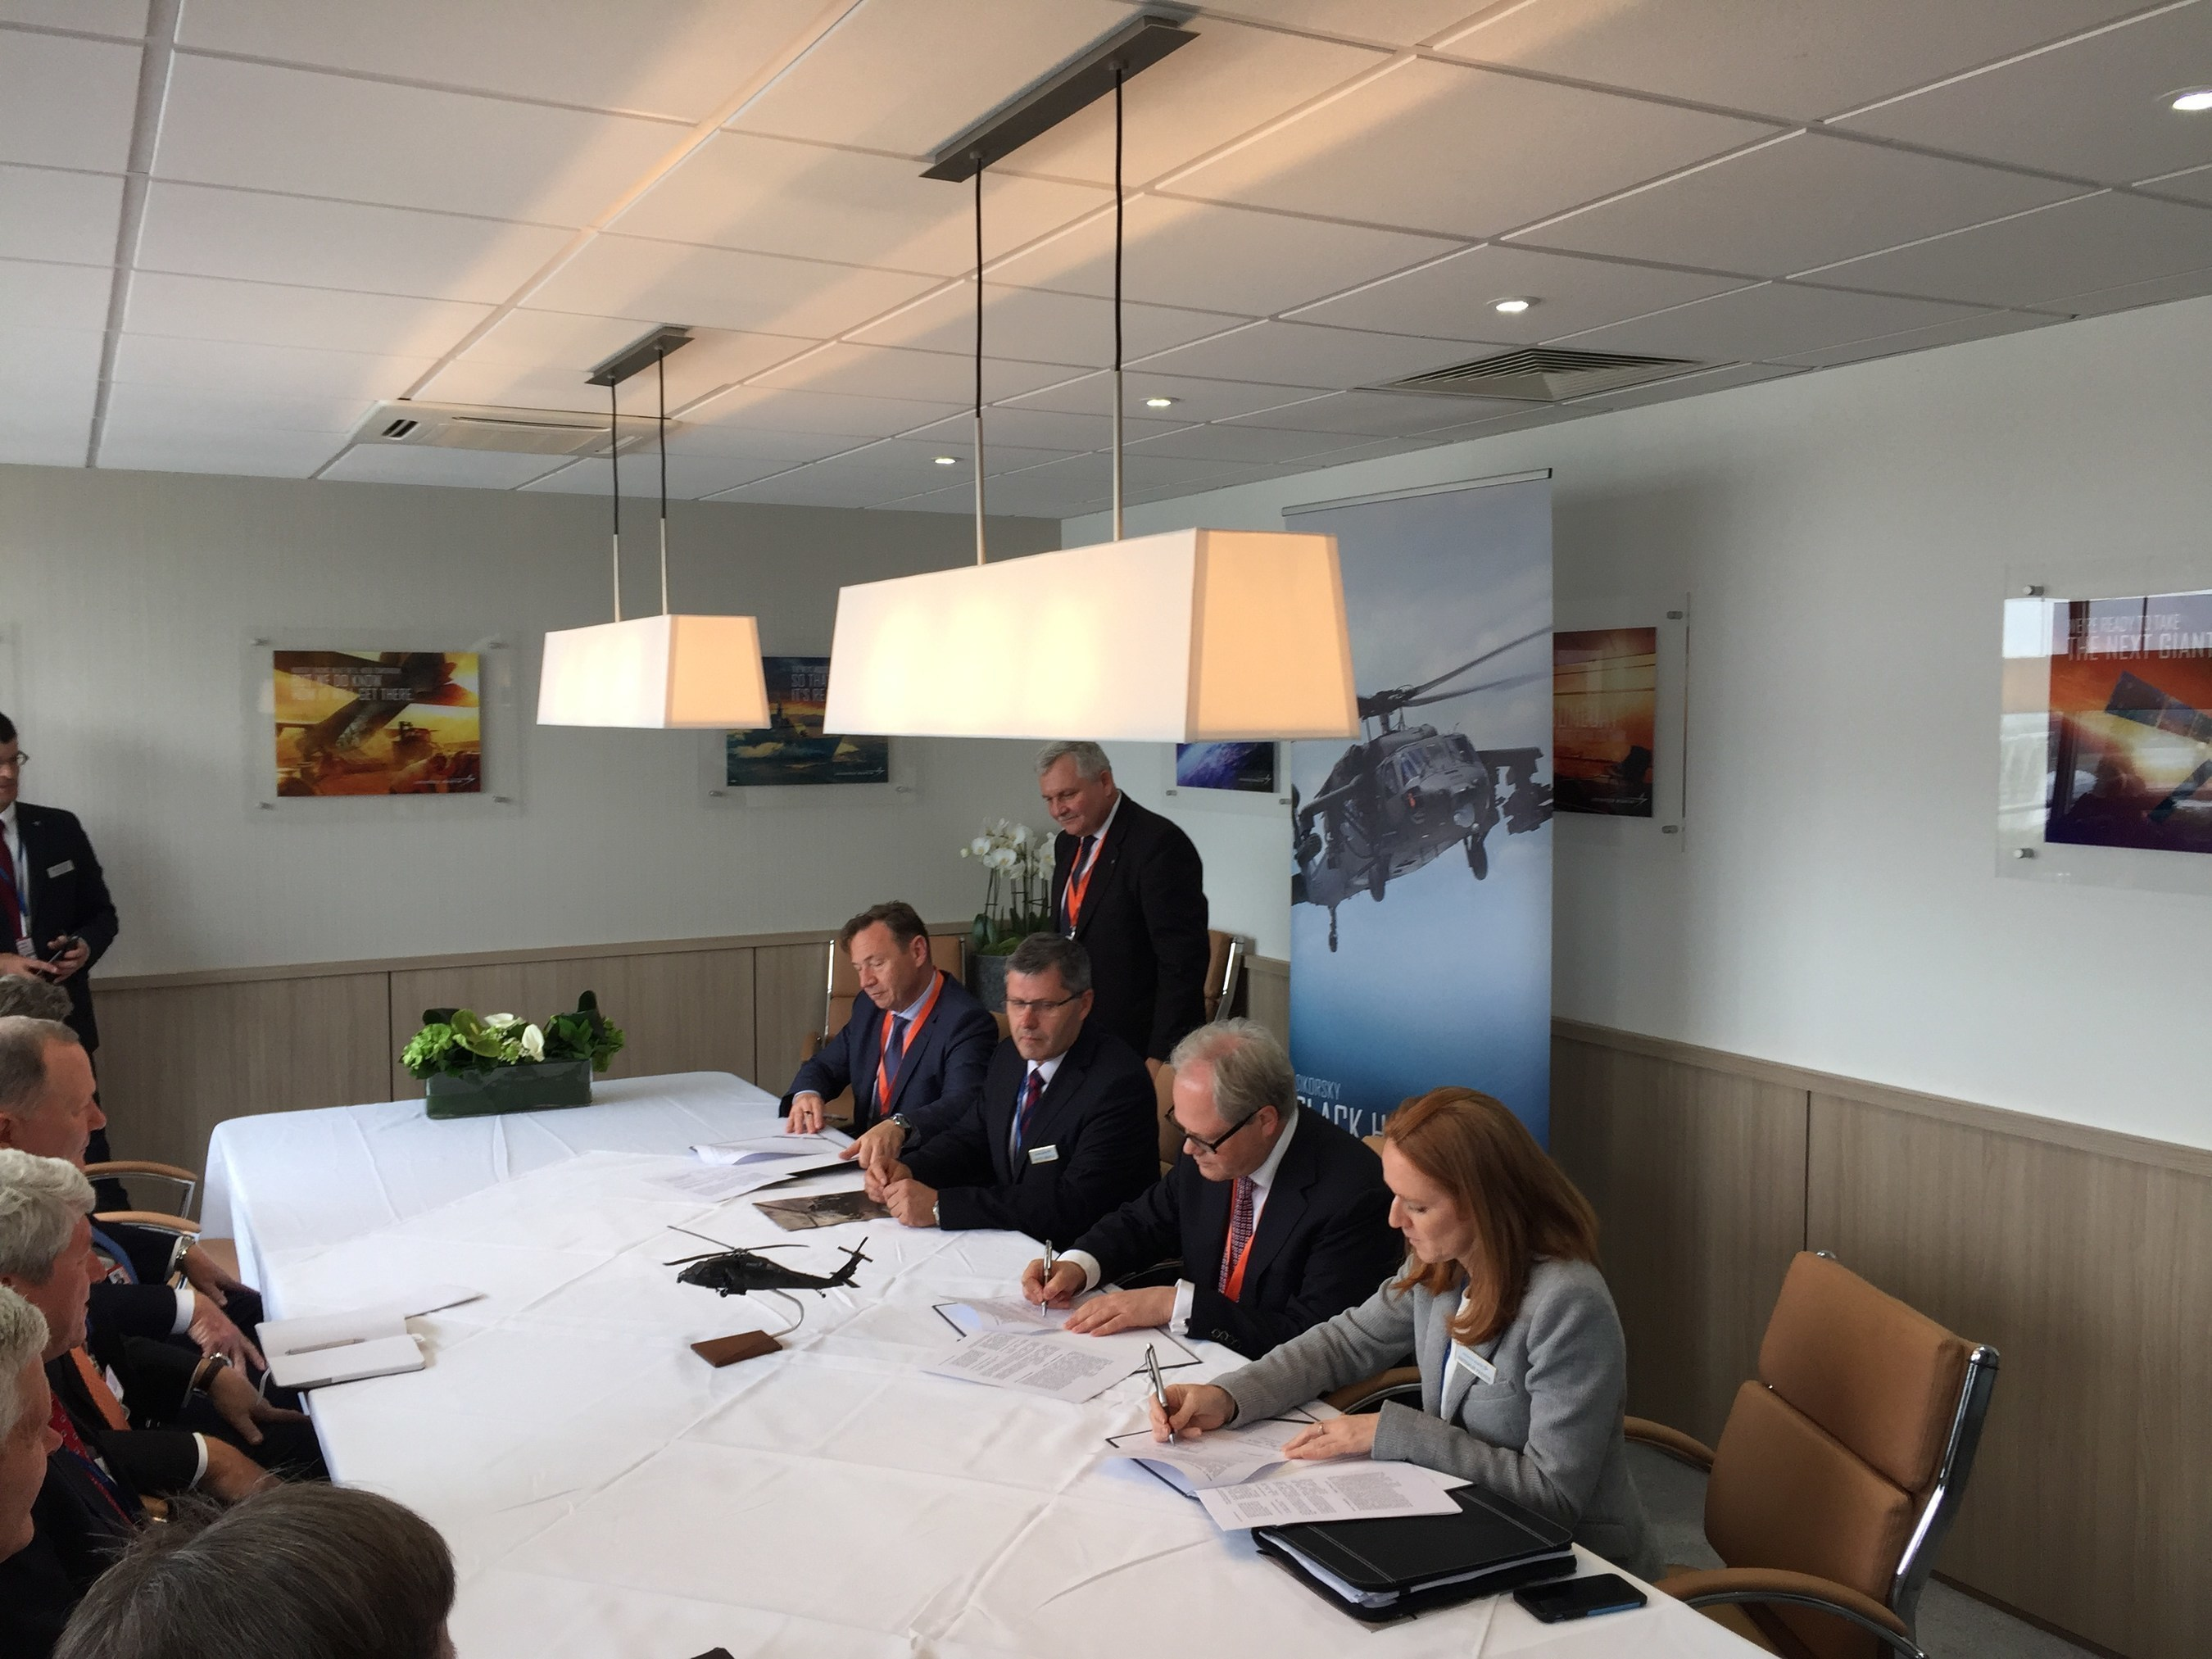 Sikorsky signed a memorandum of understanding with Polska Grupa Zbrojeniowa (PGZ), Poland's industry armaments group during the Farnborough International Airshow. PGZ will have significant involvement in production of the international BLACK HAWK helicopter should the Polish Government order BLACK HAWK aircraft from Sikorsky's PZL Mielec facility. Signing the MOU are Nathalie Previte, vice president, Sikorsky Strategy and Business Development, Arkadiusz Siwko, PGZ president, Janusz Zakrecki, president of PZL Mielec and Radosław Obolewski, Member of the PGZ Management Board.